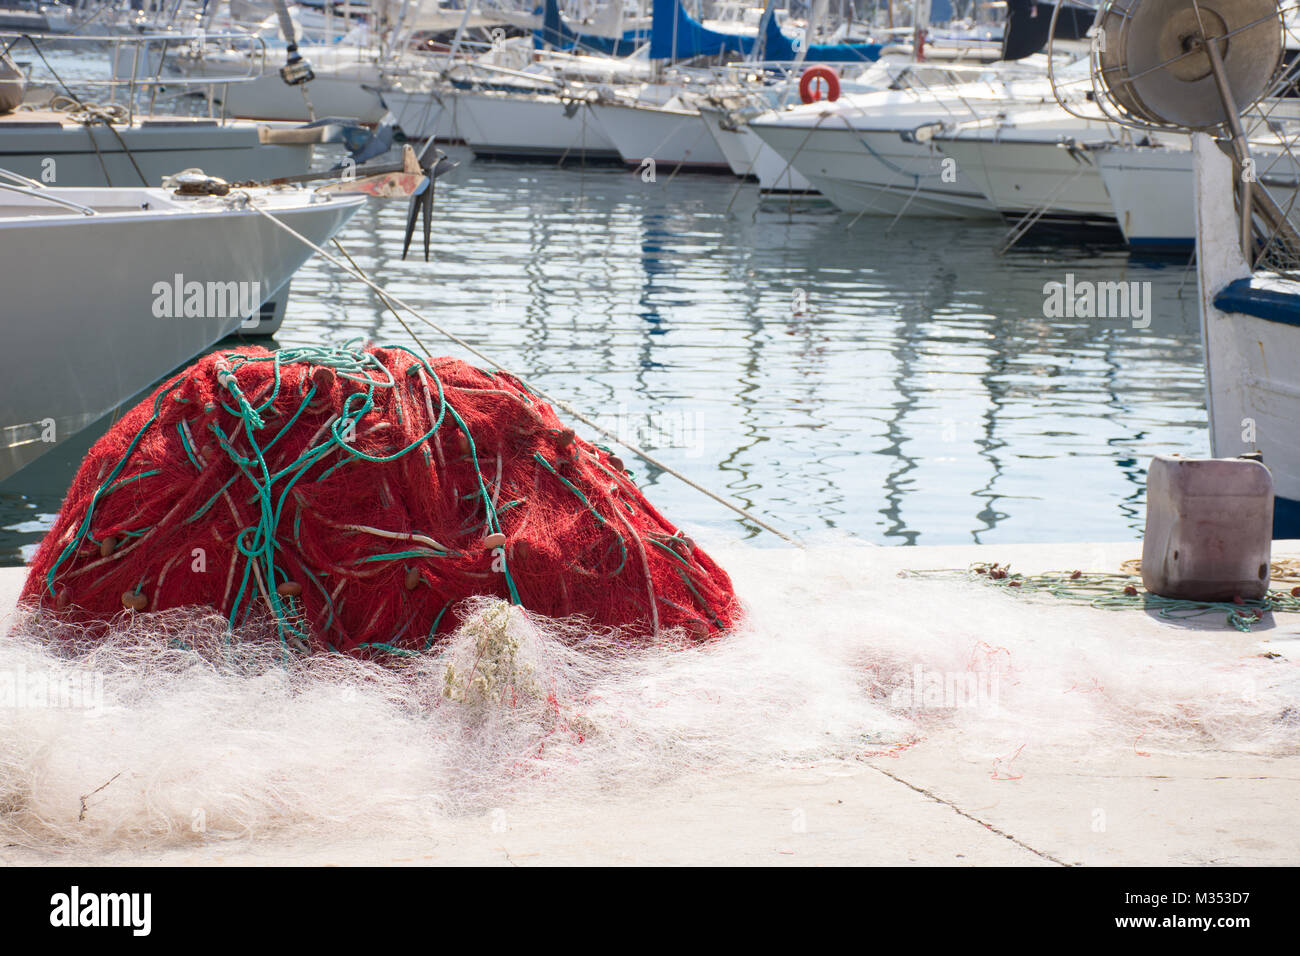 Red Fish Netting Stock Photos & Red Fish Netting Stock Images - Alamy